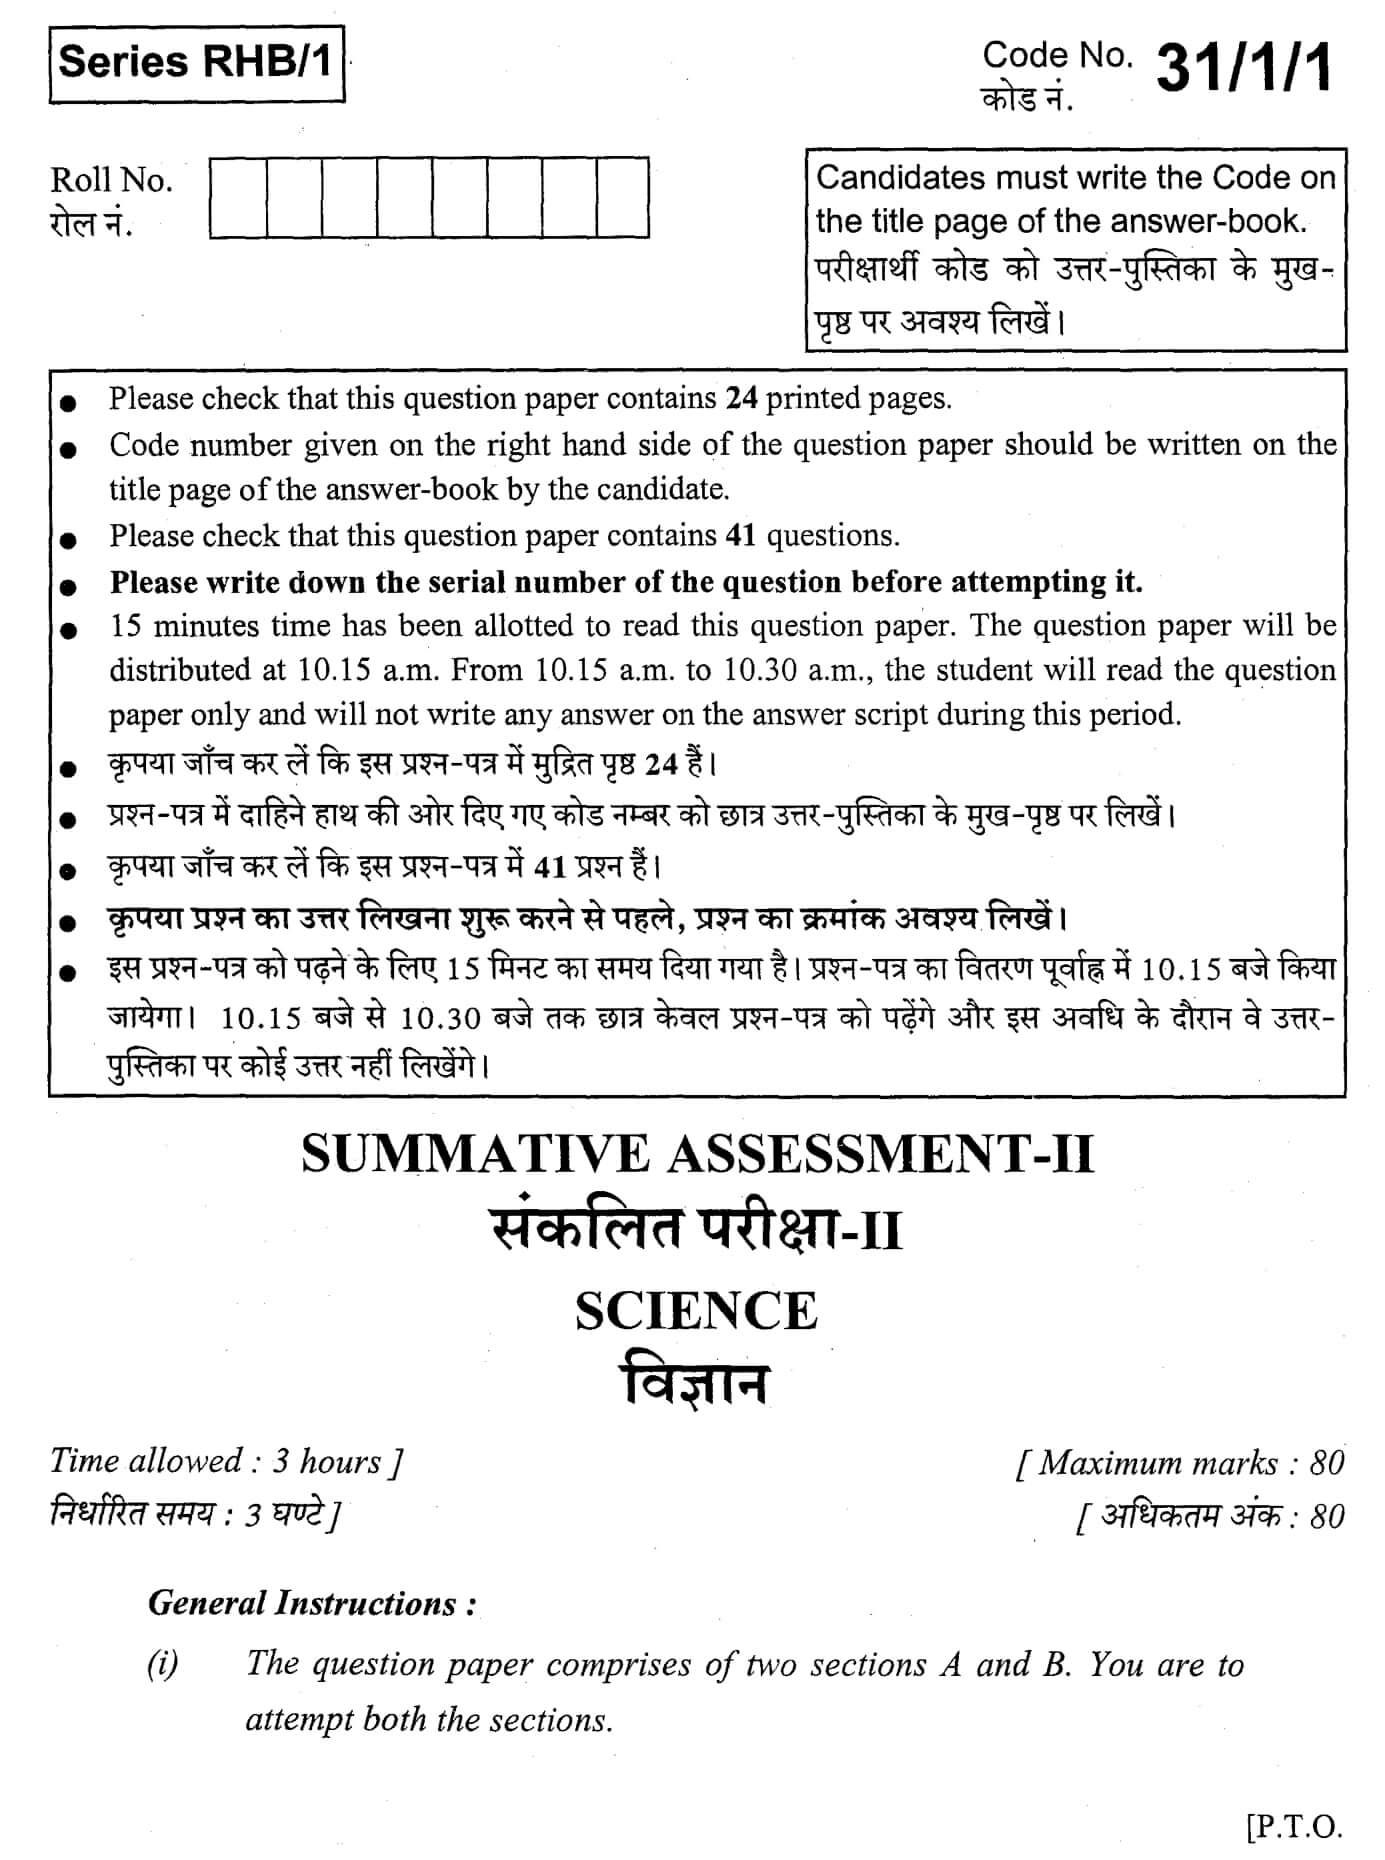 cbse class 10 science question paper 2011